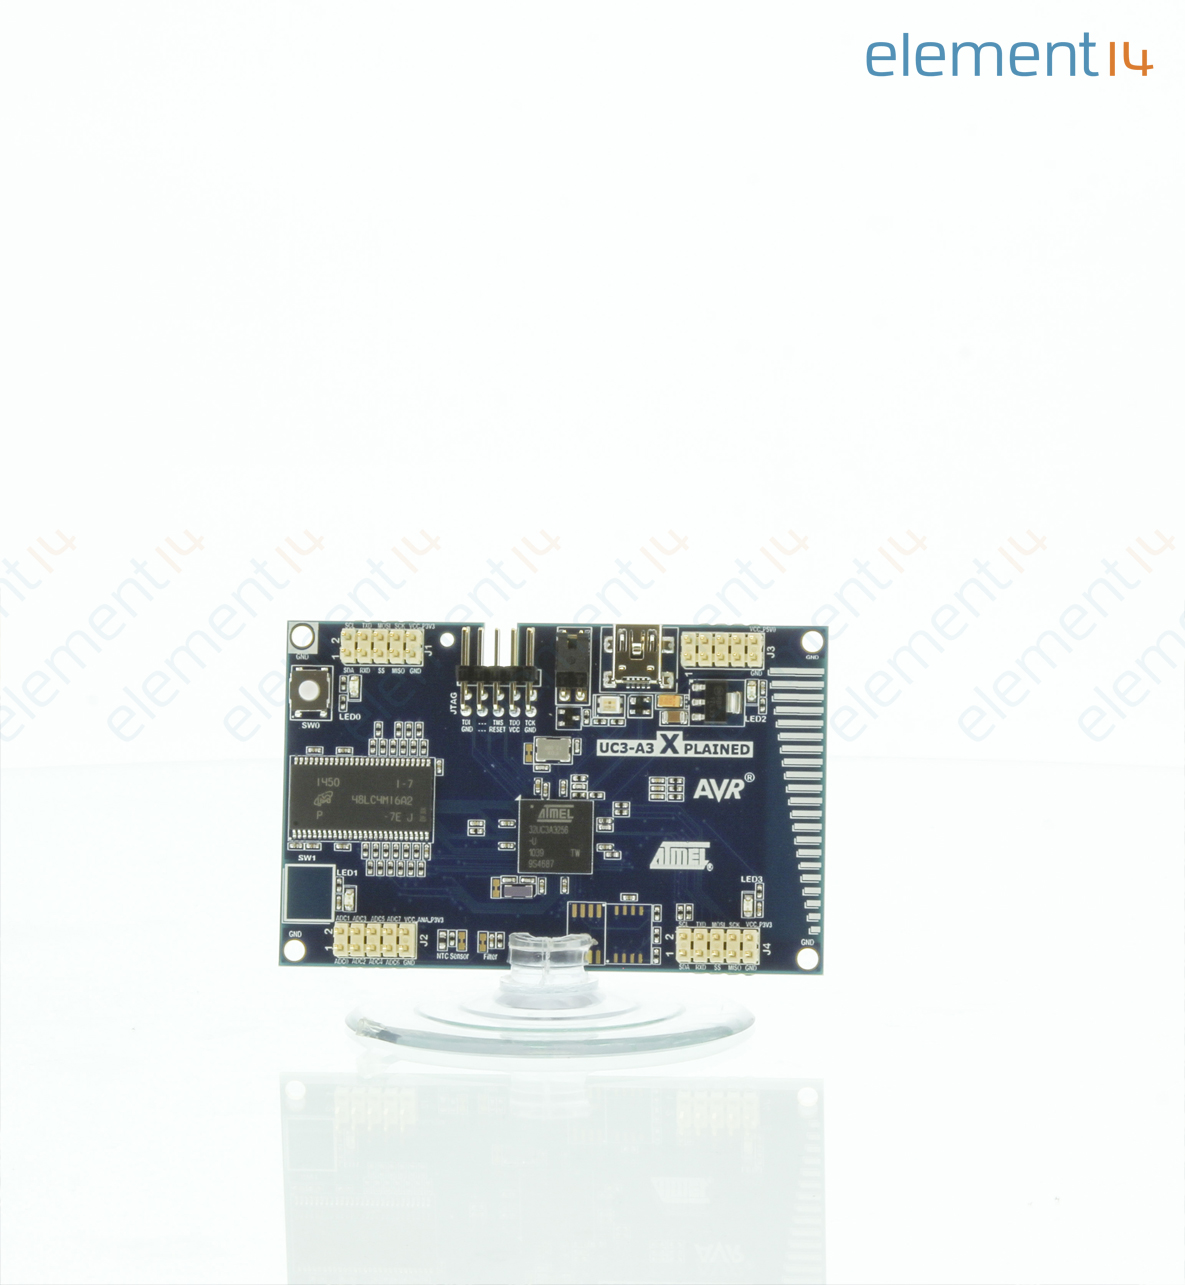 At32uc3a3 Xpld Microchip Evaluation Kit At32uc3a3256 Mcu High Atmel Avr Family Expanded Richmedia 9400b En